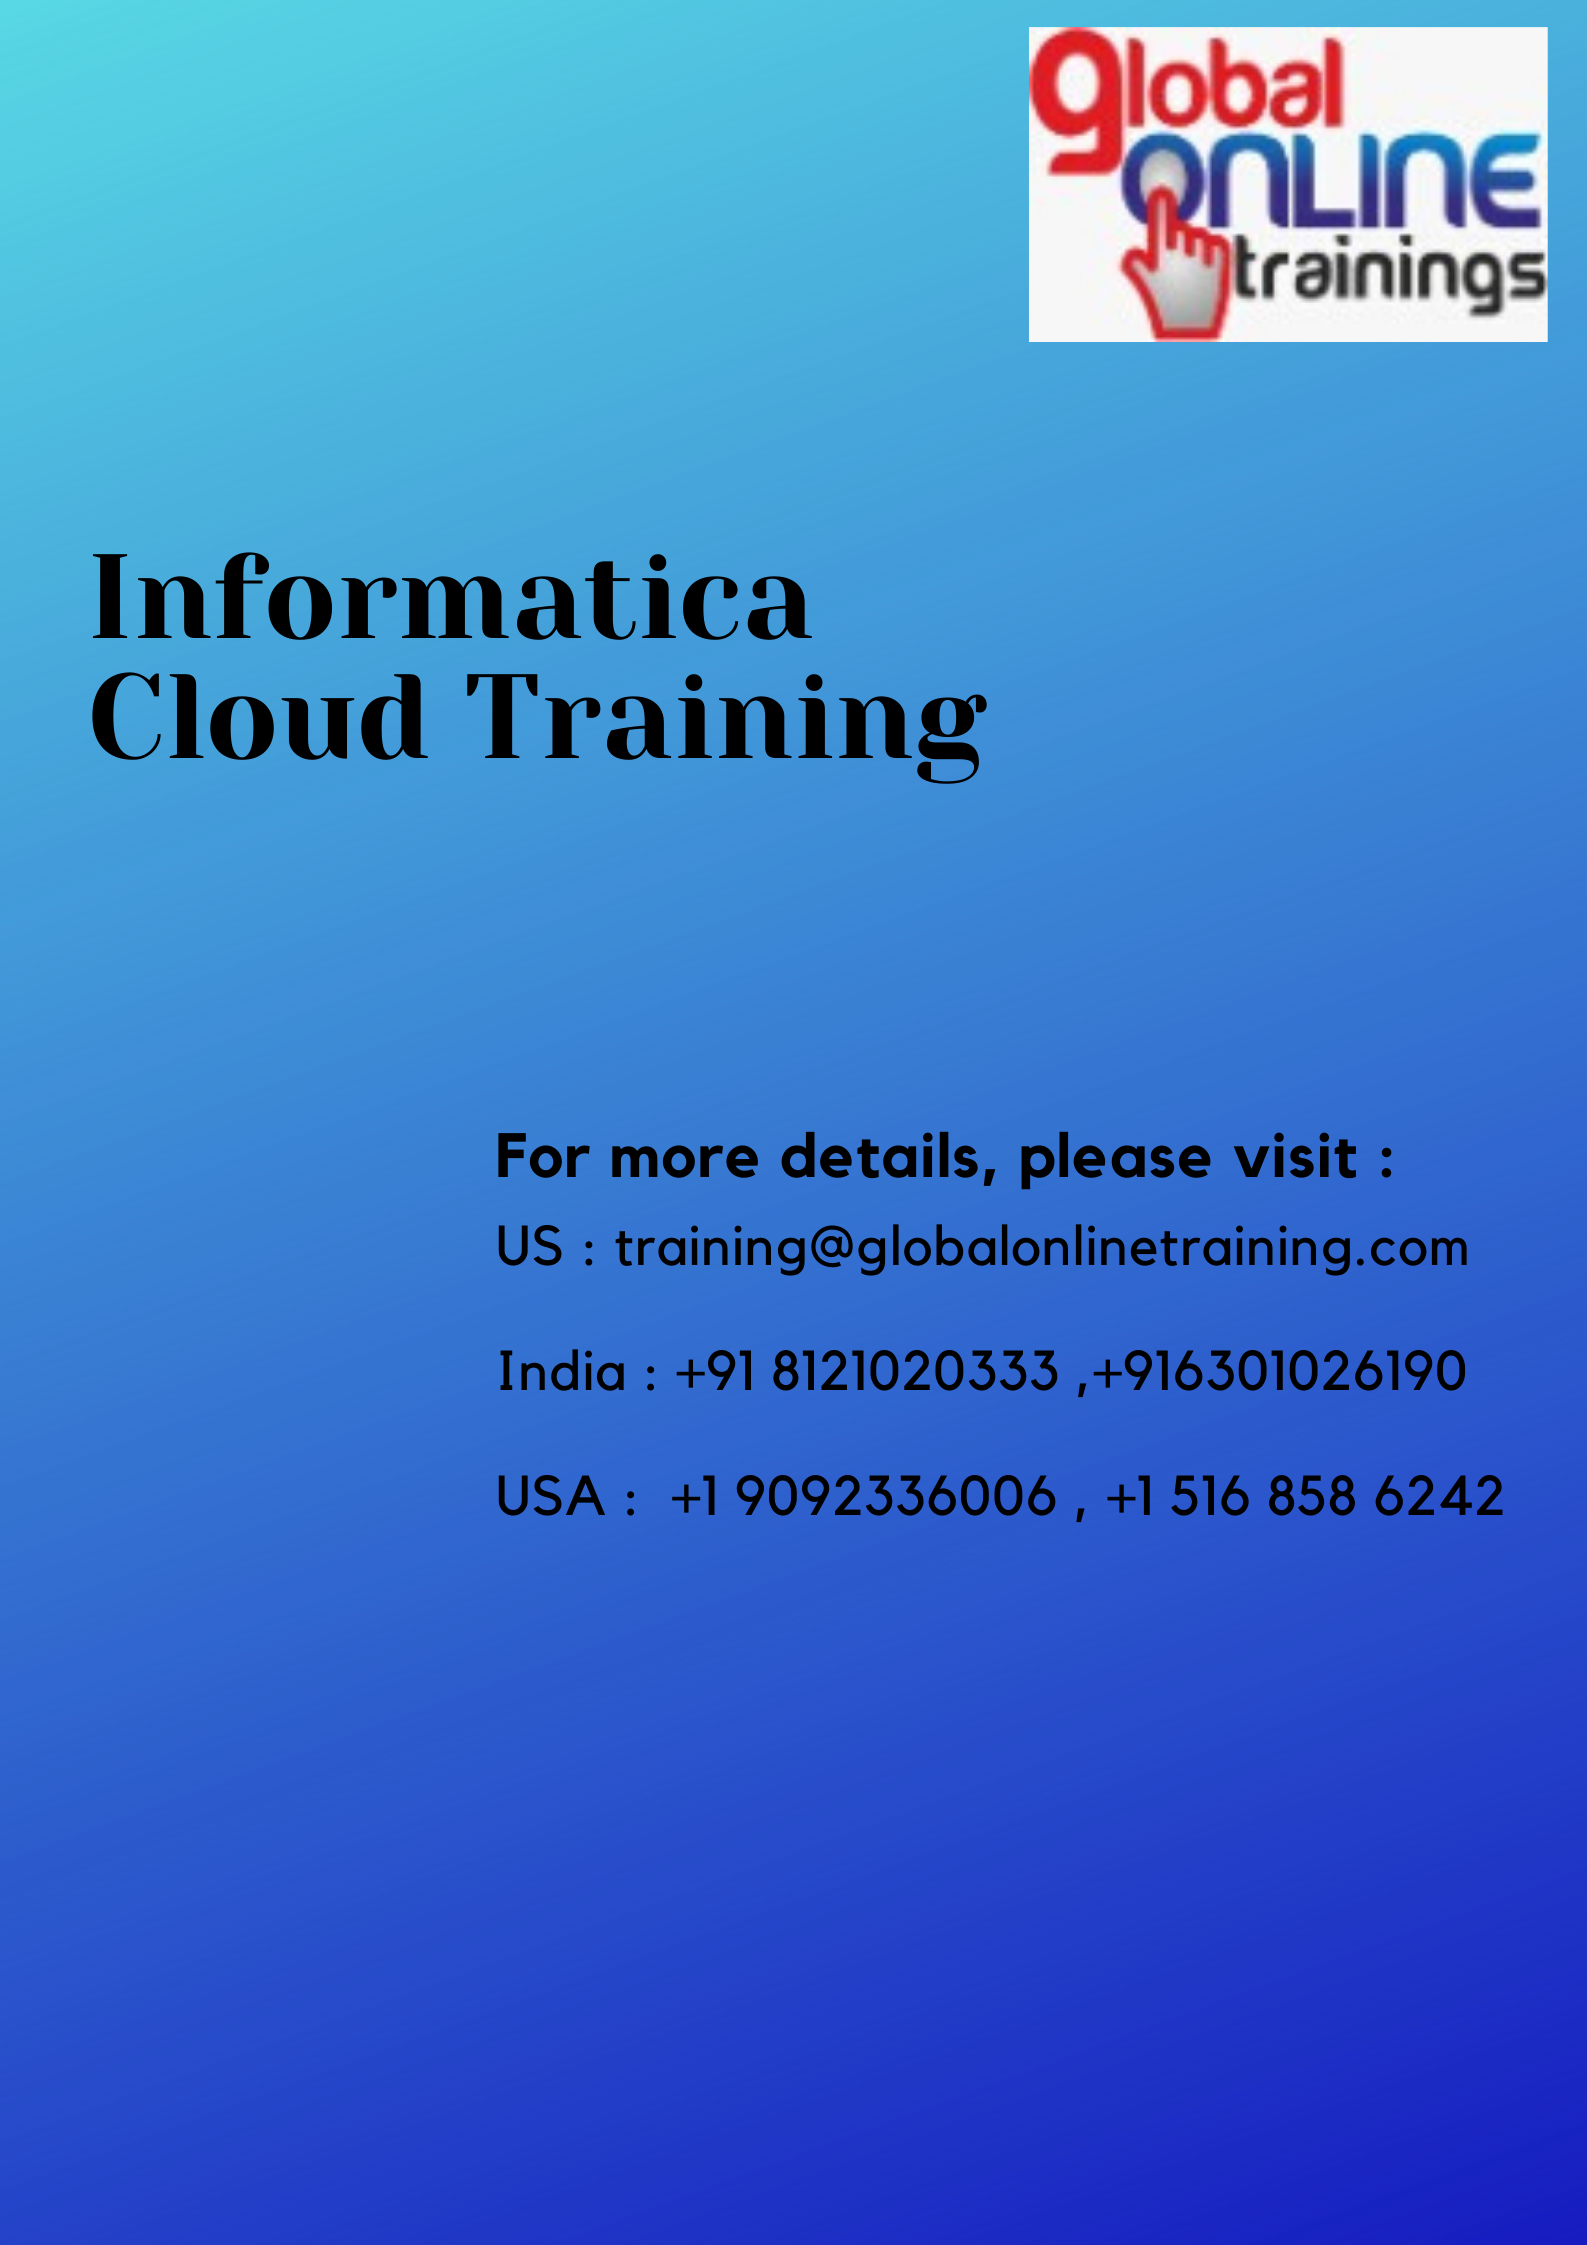 Informatica Cloud Training Informatica Cloud Online Training Got In 2020 Online Training Corporate Training Master Data Management